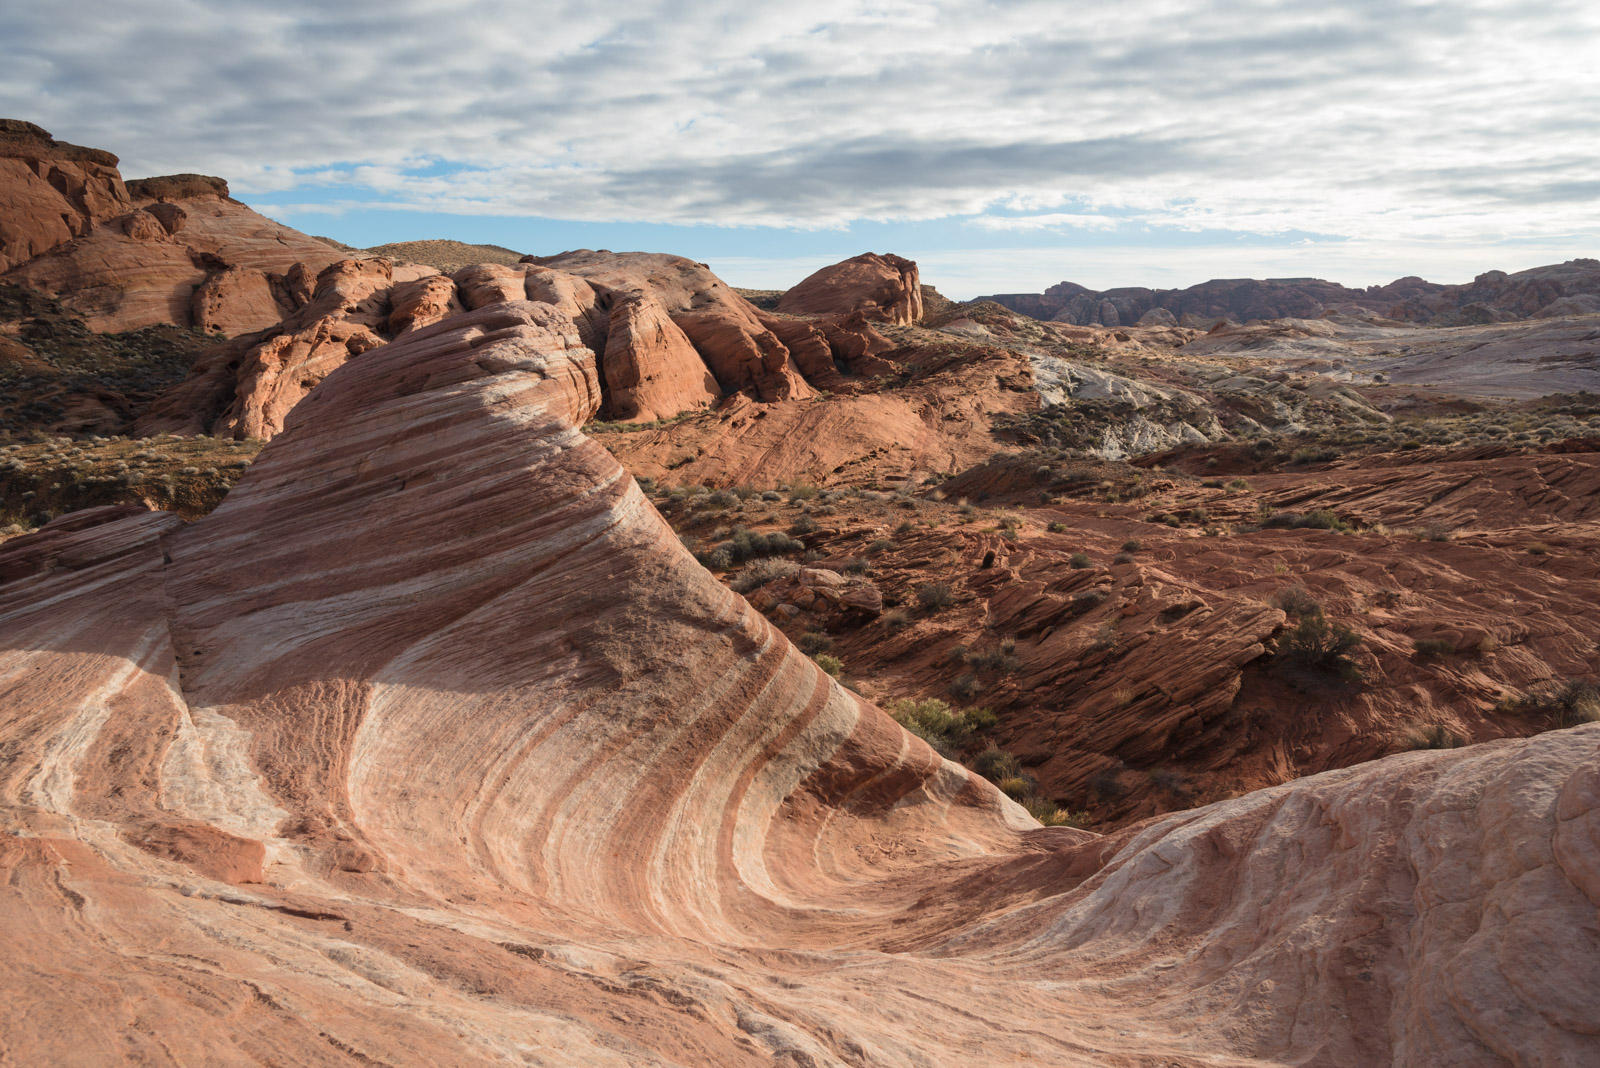 Der Valley of Fire State Park